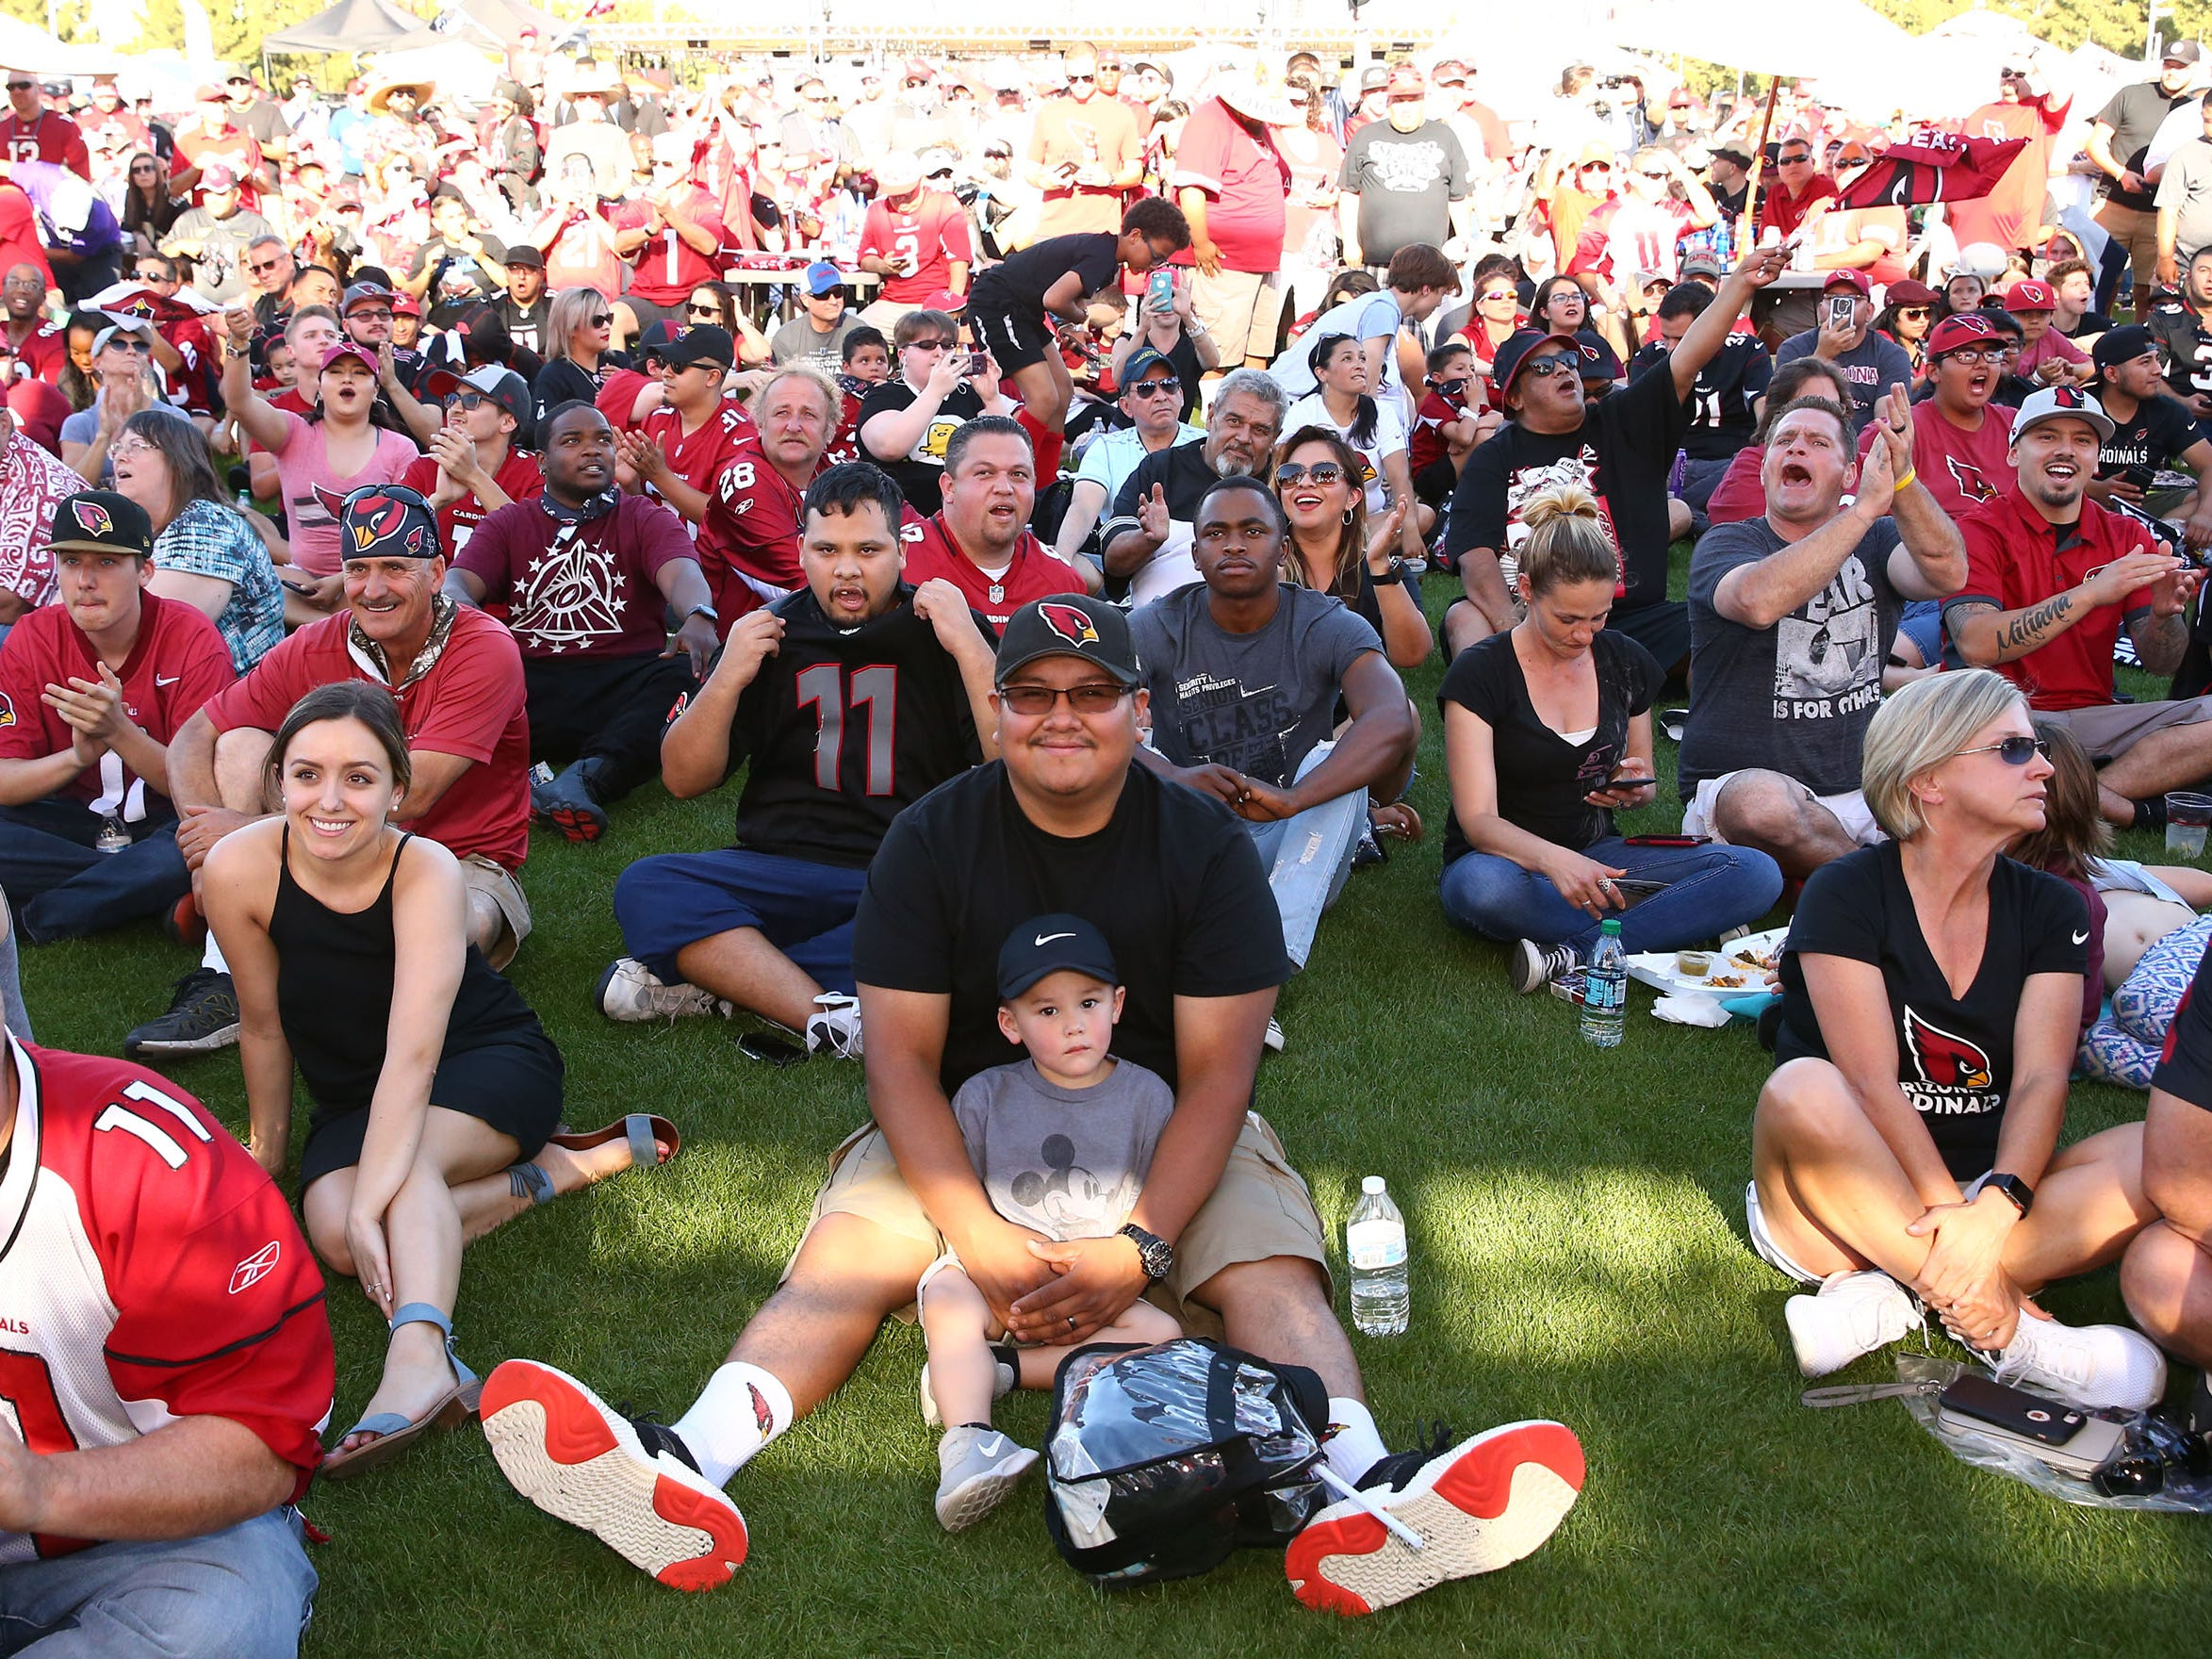 Fans prepare for the annoucement of the number one draft pick by the Arizona Cardinals during the NFL Draft watch party at State Farm Stadium on Apr. 25, 2019 in Glendale, Ariz.